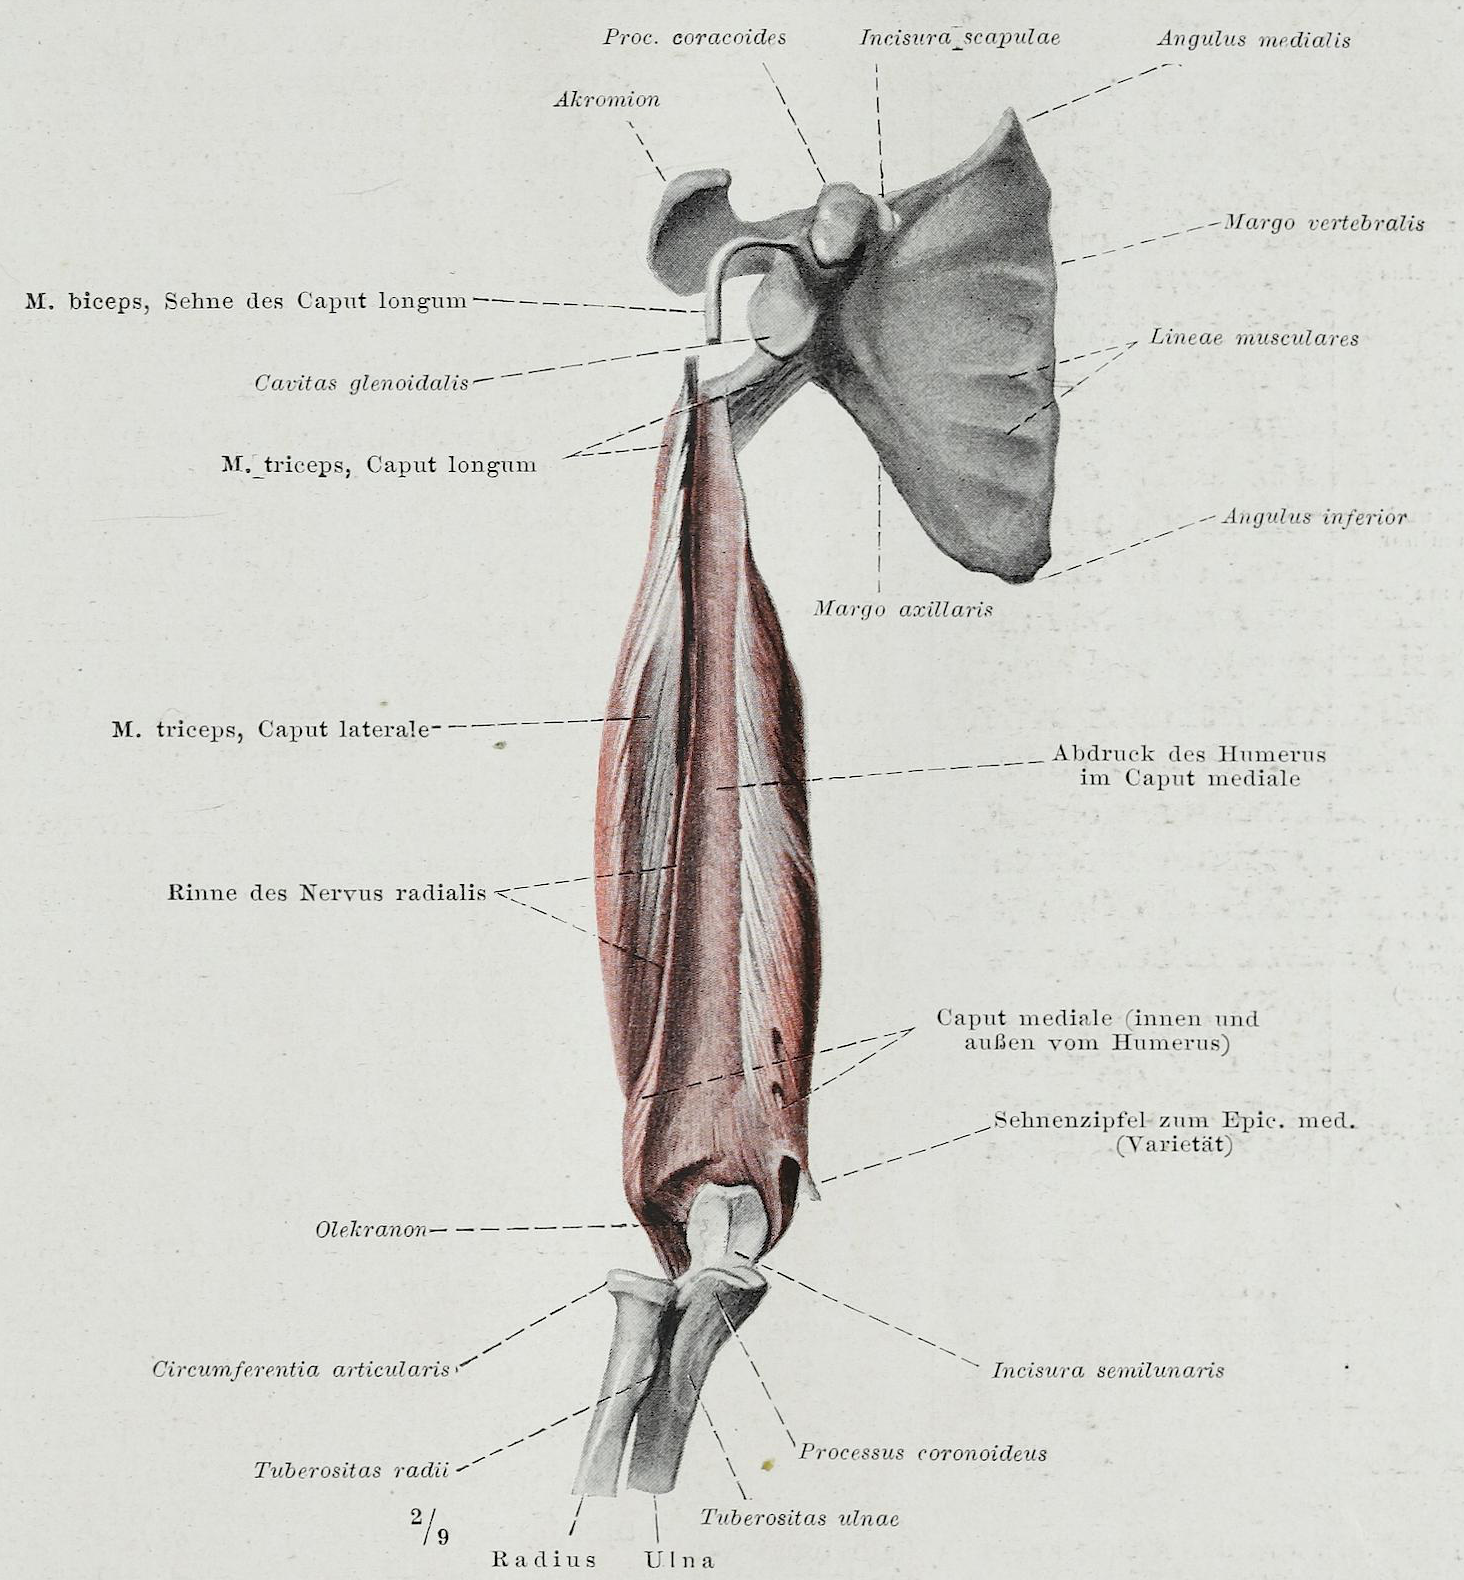 File:Braus 1921 170.png - Wikimedia Commons